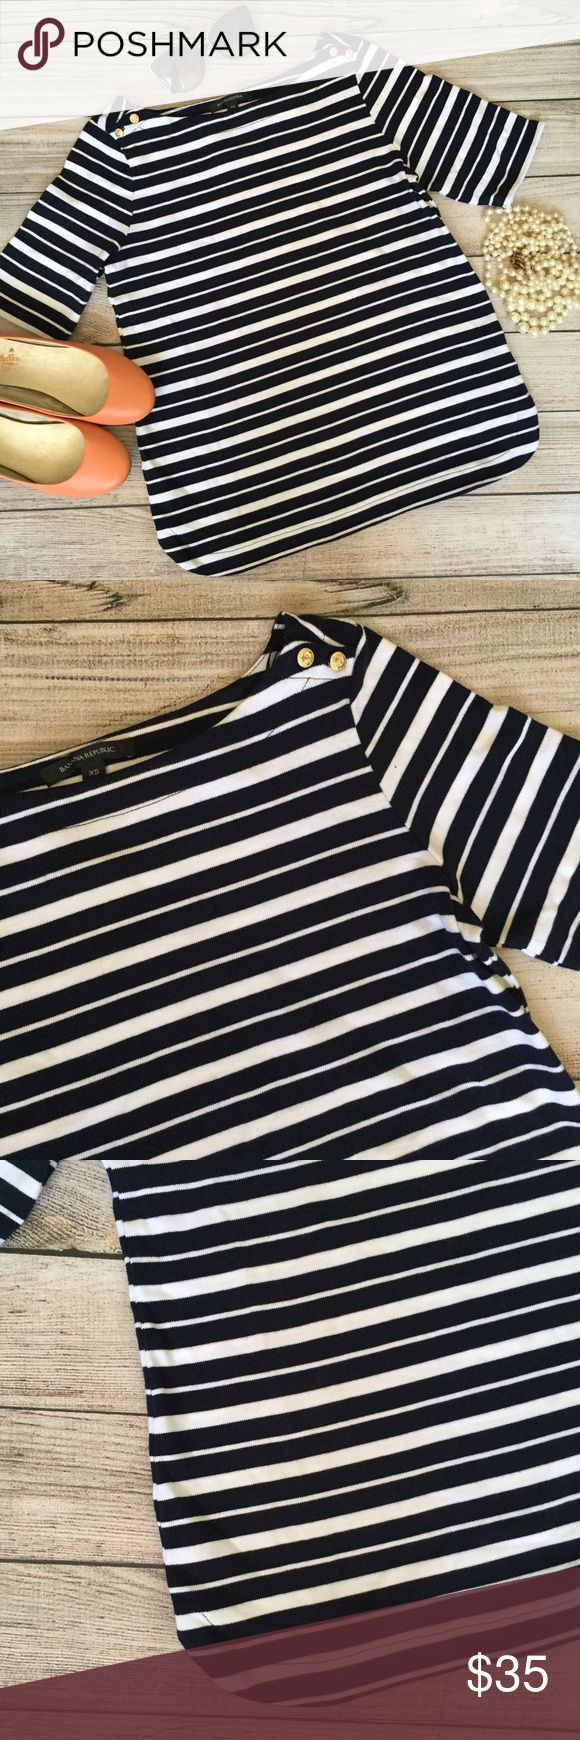 Banana Republic Top Navy and white stripes. Gold button detail at shoulder. Rounded hemline. NWT. Banana Republic Tops